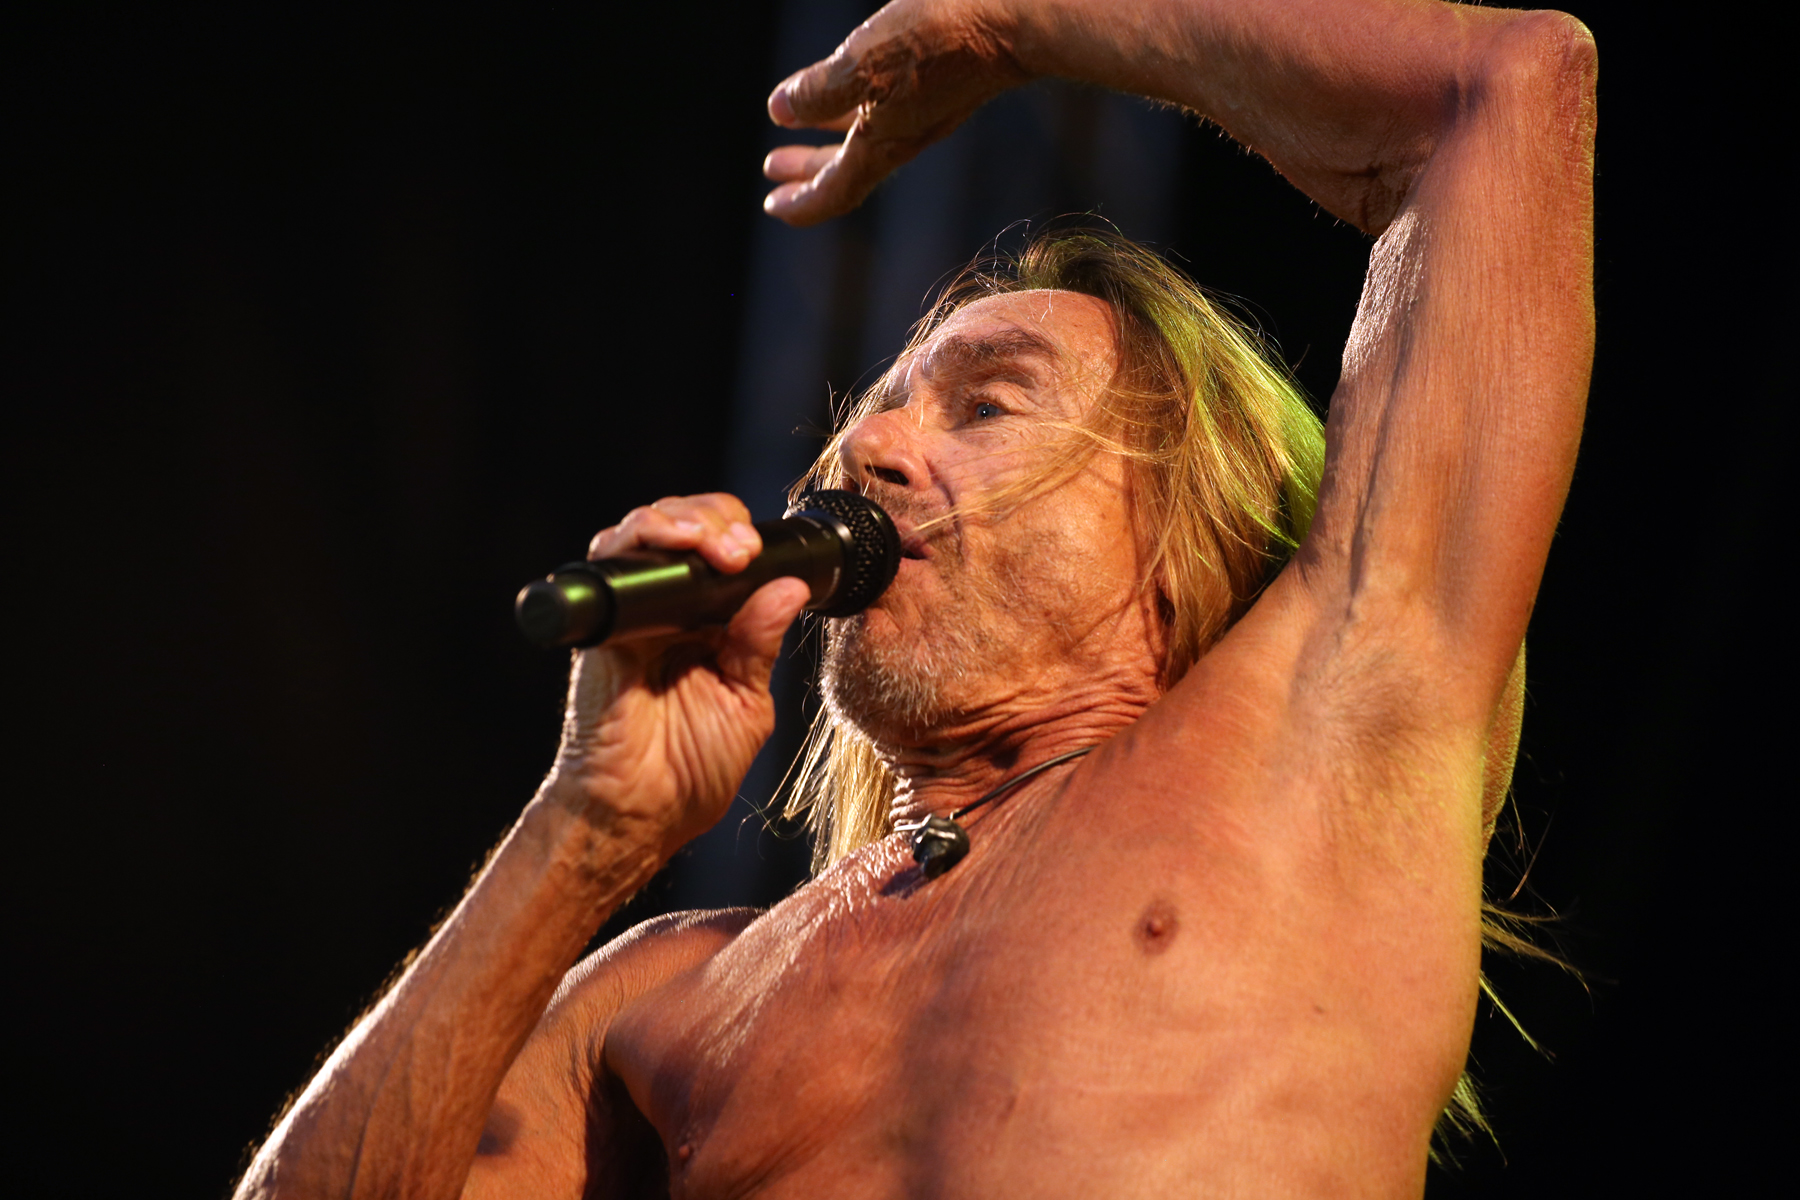 Iggy Pop live at Haven Festival Copenhagen